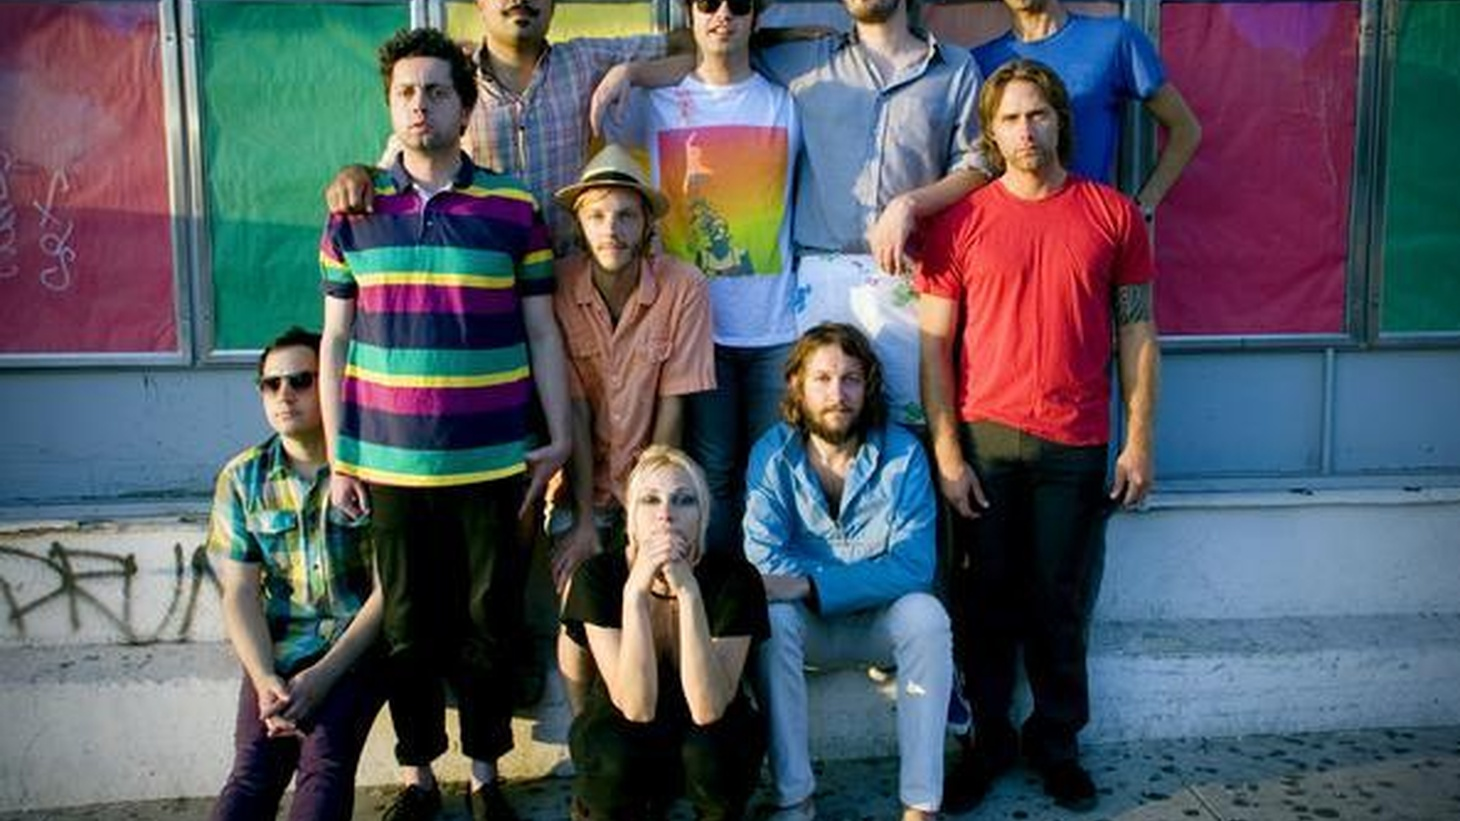 Fool's Gold is an LA-based collective that shares a love of African music...